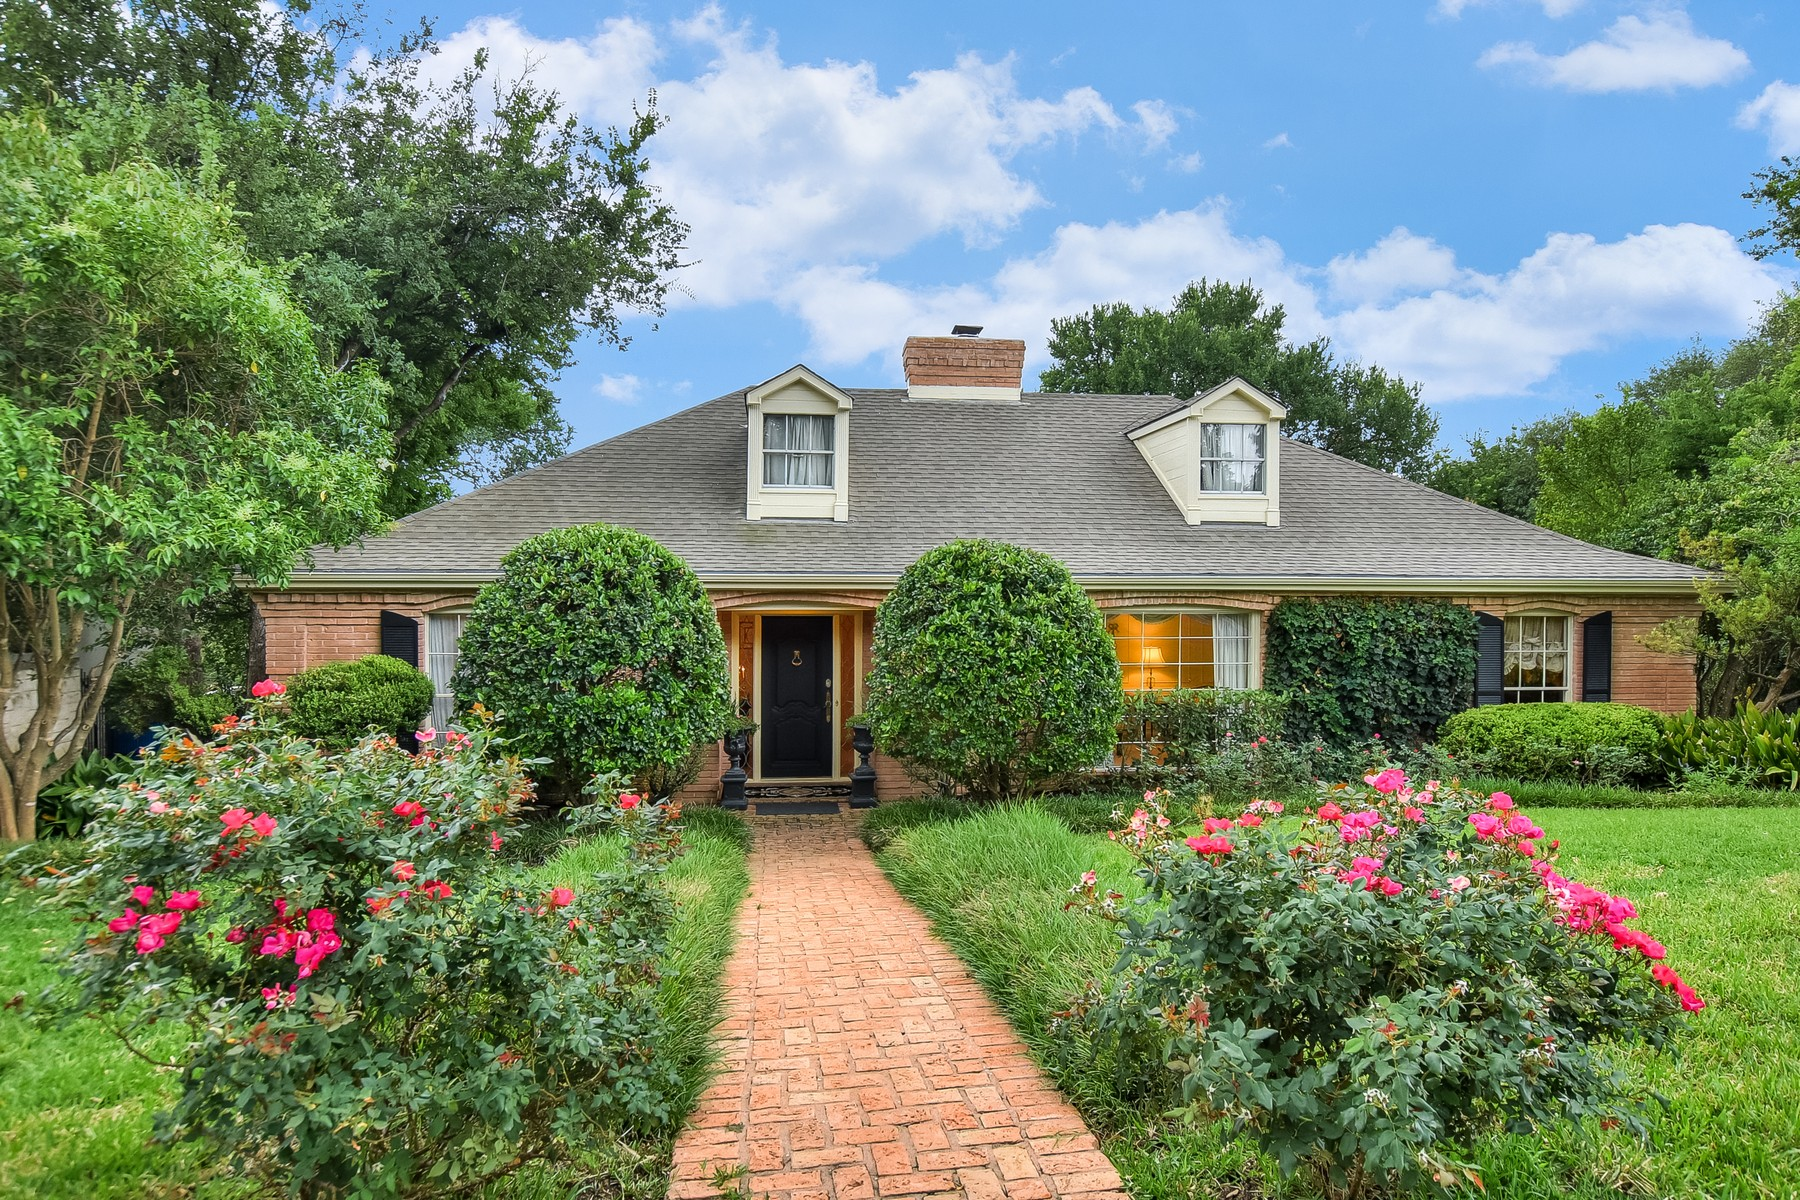 Single Family Home for Sale at Walk to Tarrytown Boat Club! 3505 River Rd Austin, Texas, 78703 United States